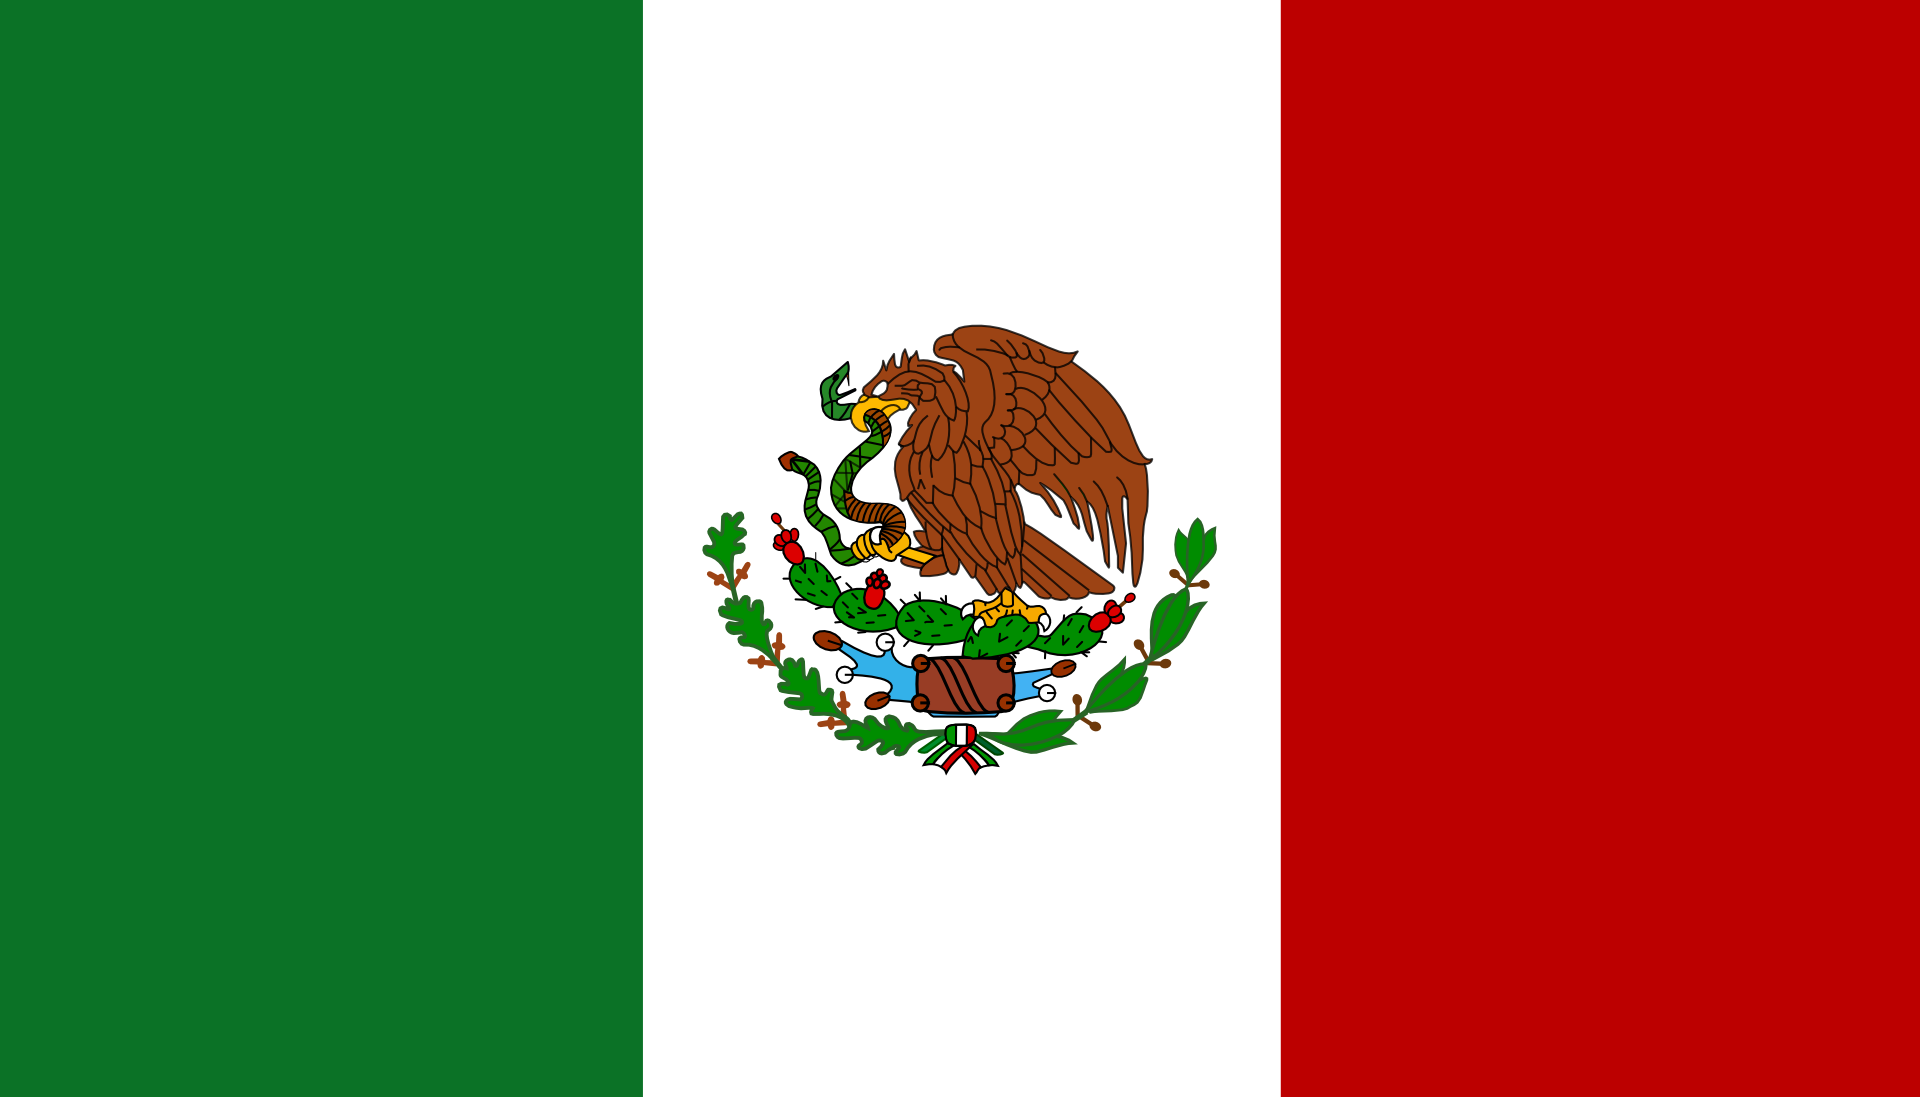 Mexican Flag Bandera Mexicana